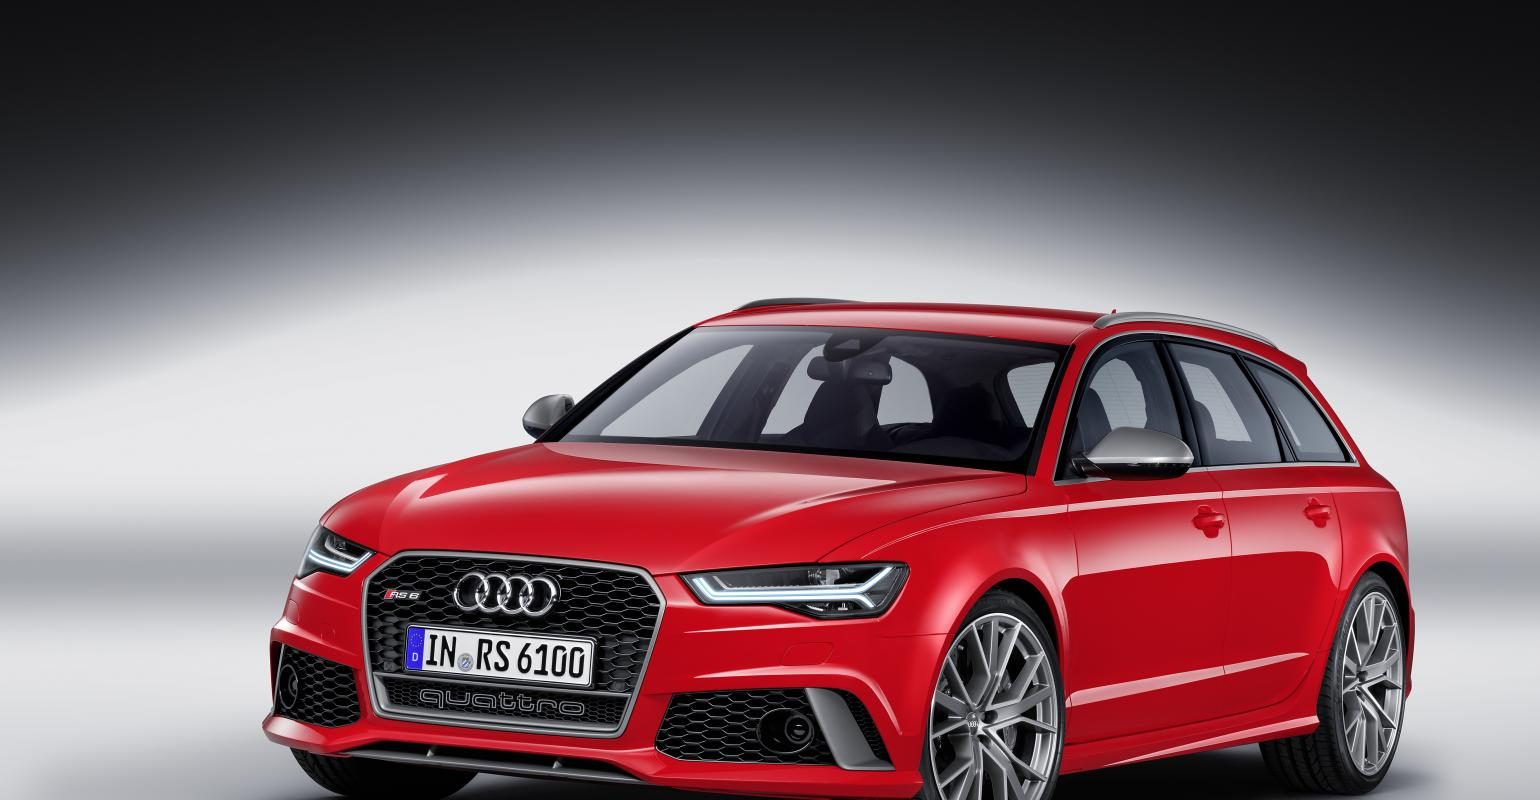 Audi Rs6 Avant Gets Even More With Performance Model